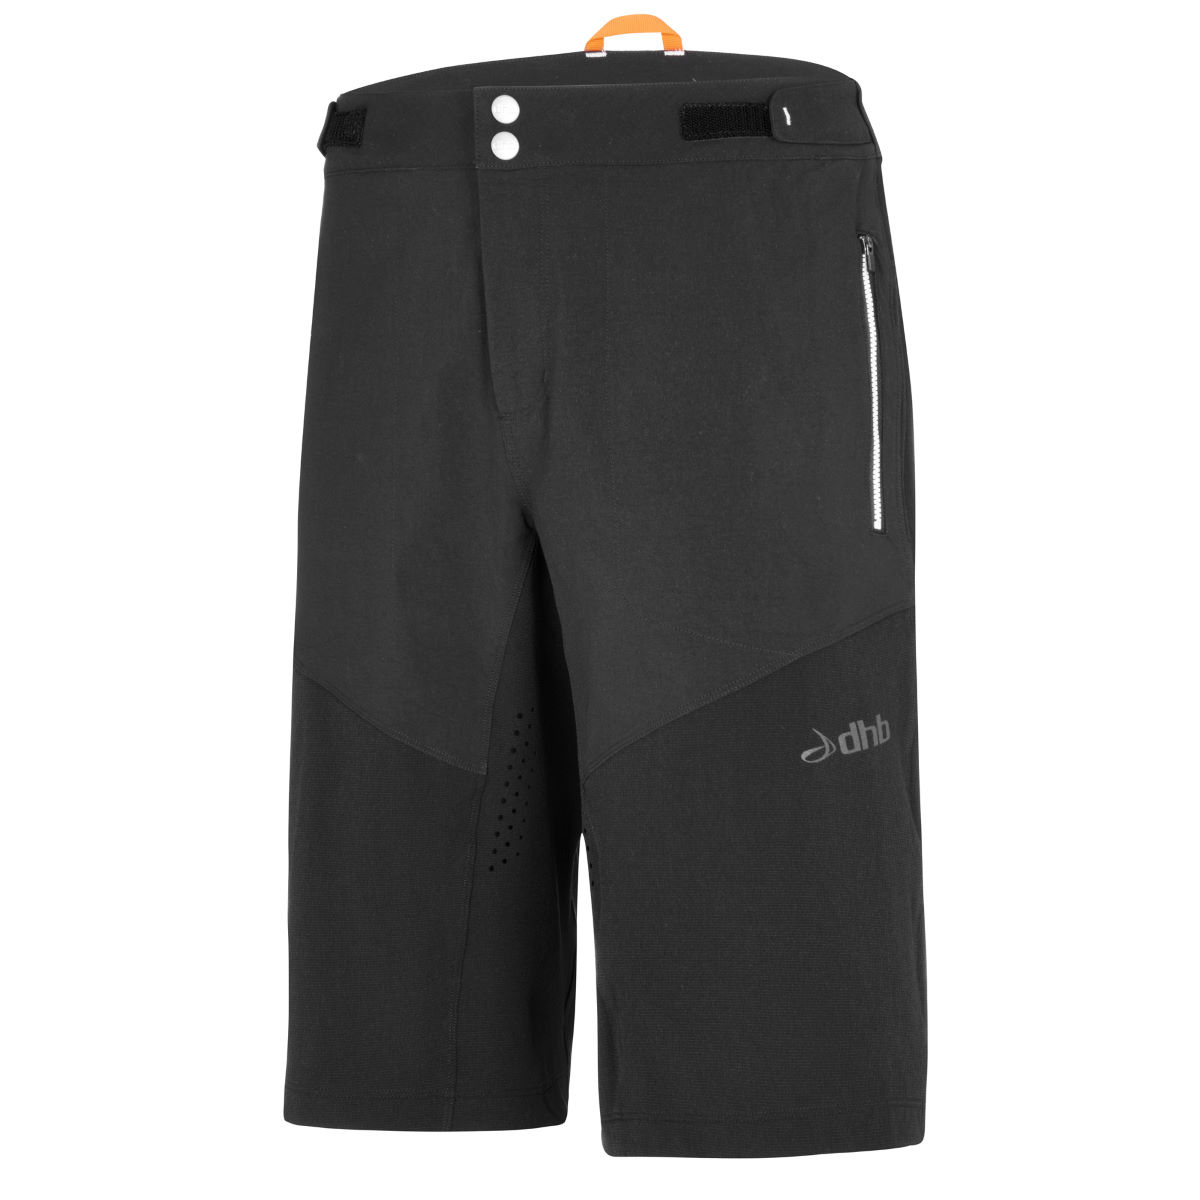 Short baggy VTT dhb Trail Pro - Small Noir Shorts VTT